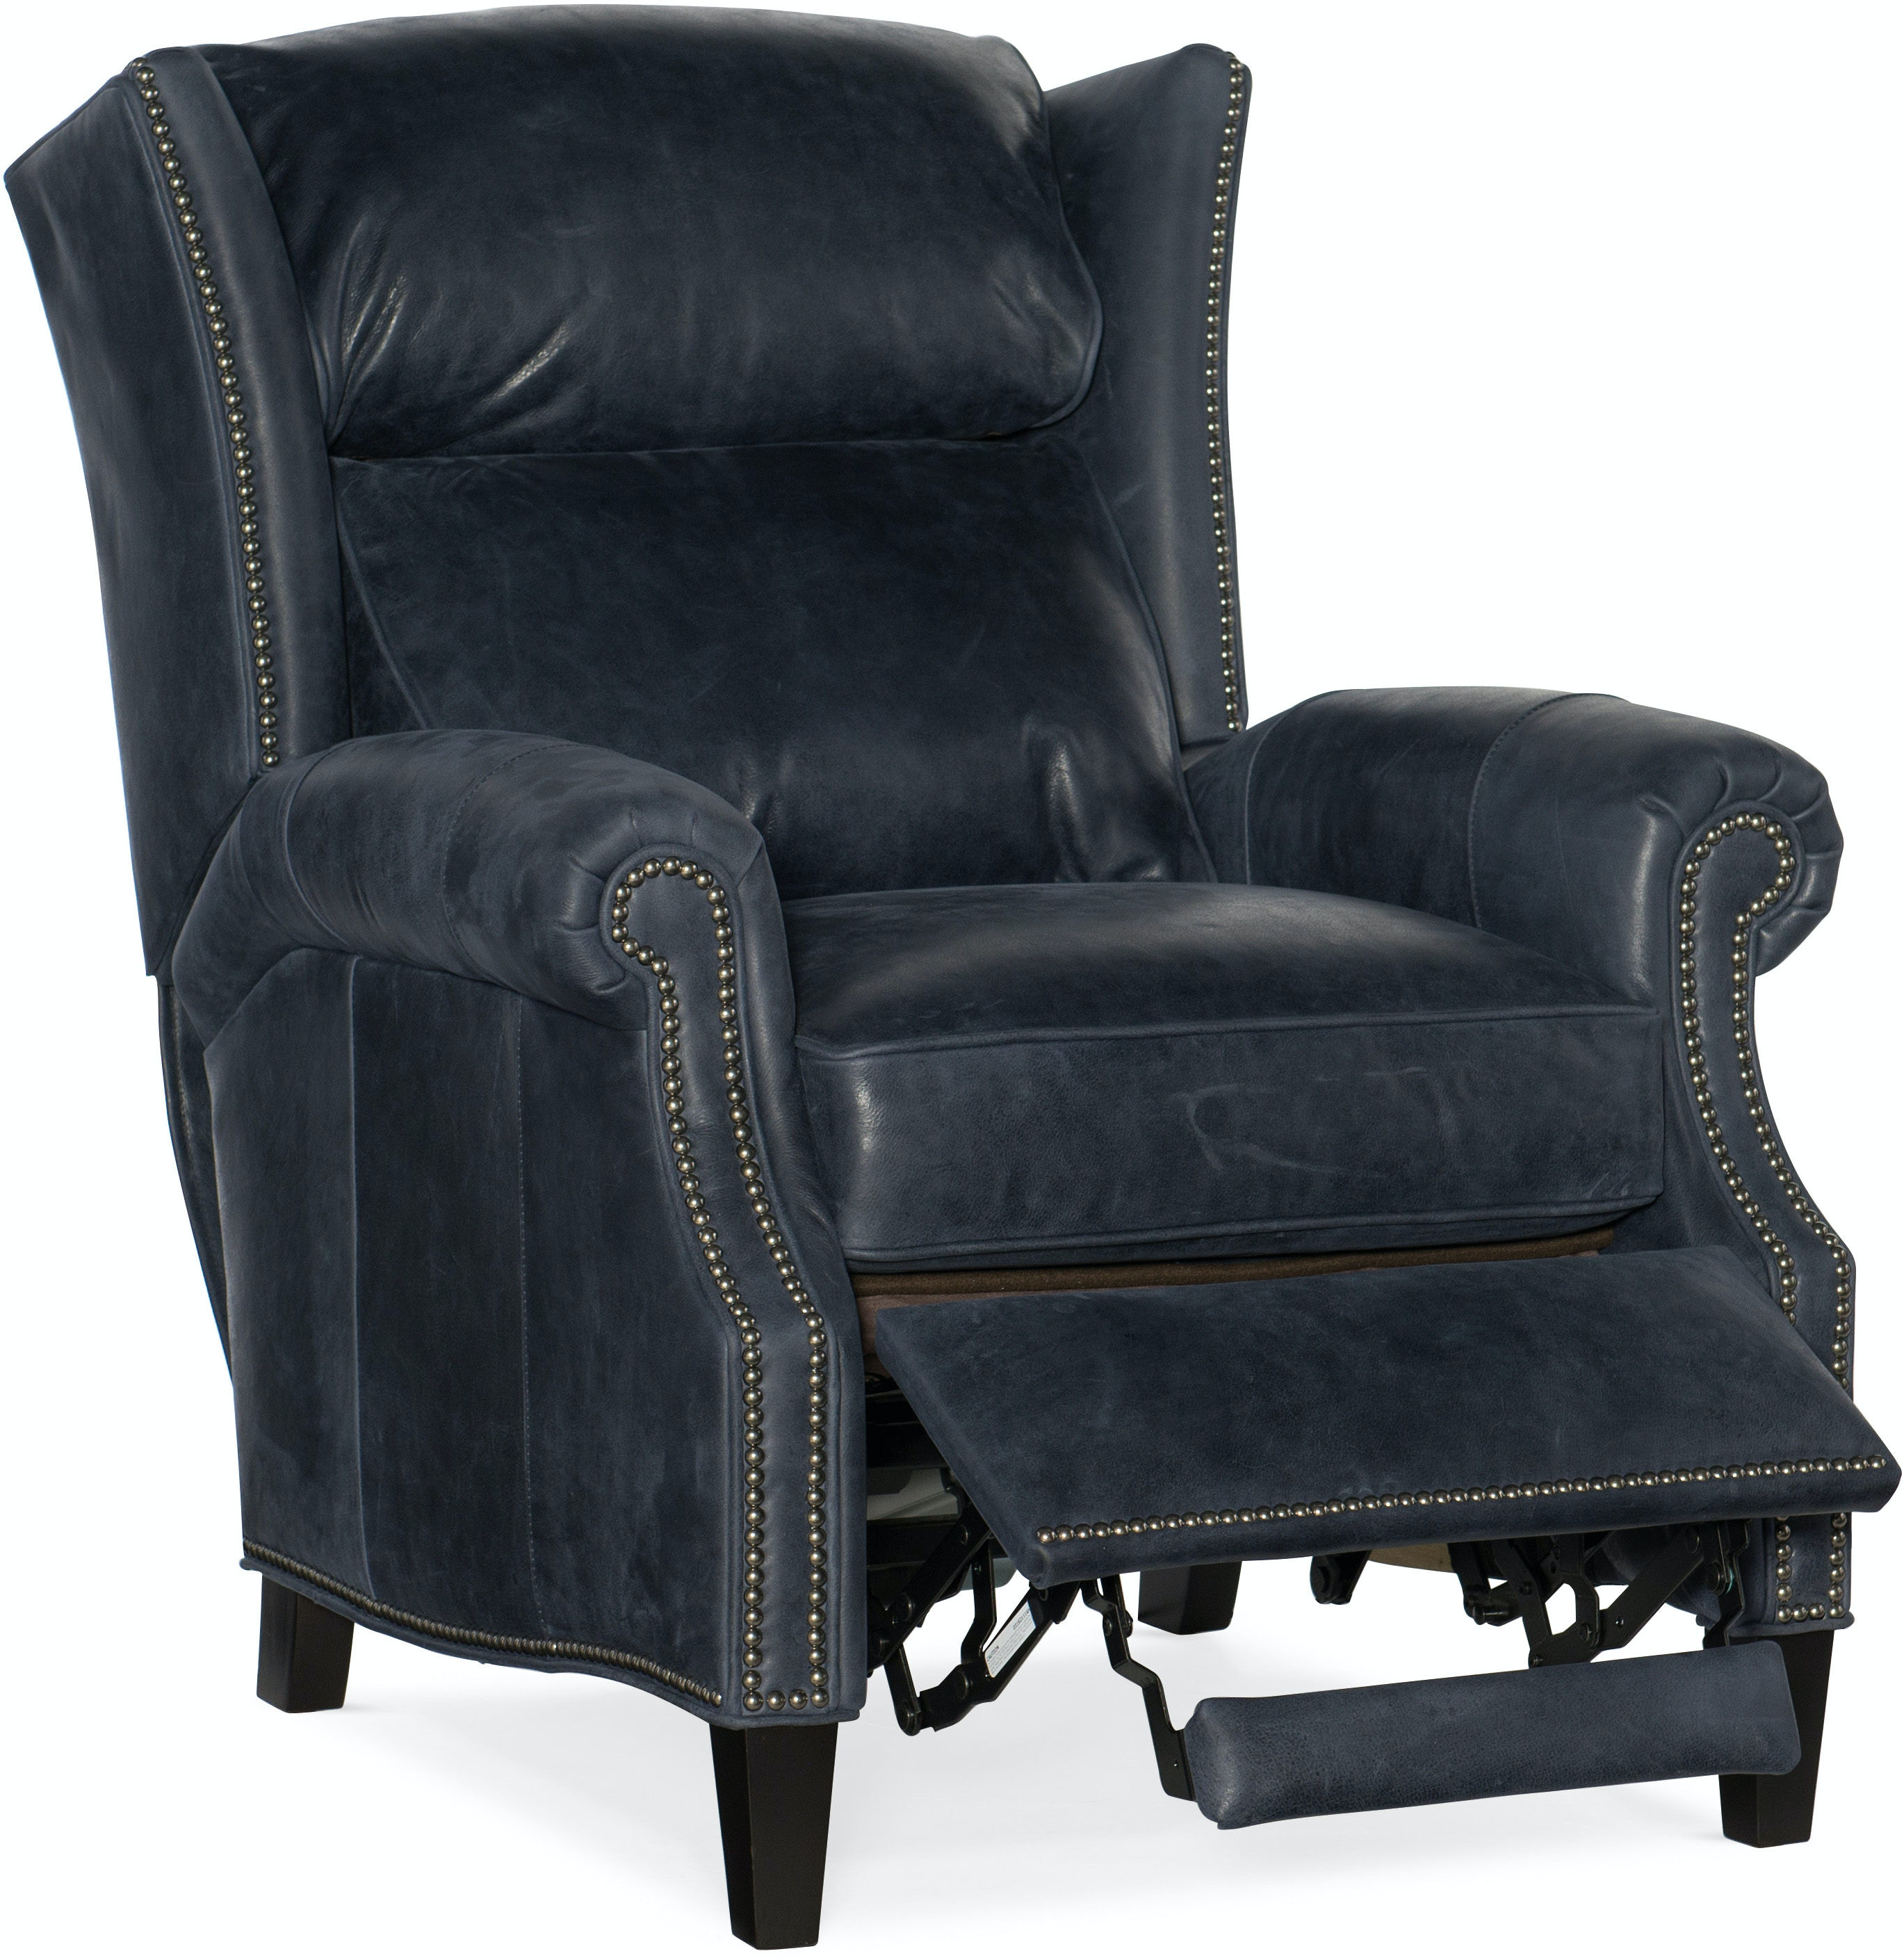 Bradington Young Living Room Broderick Recliner 4003 Bradington